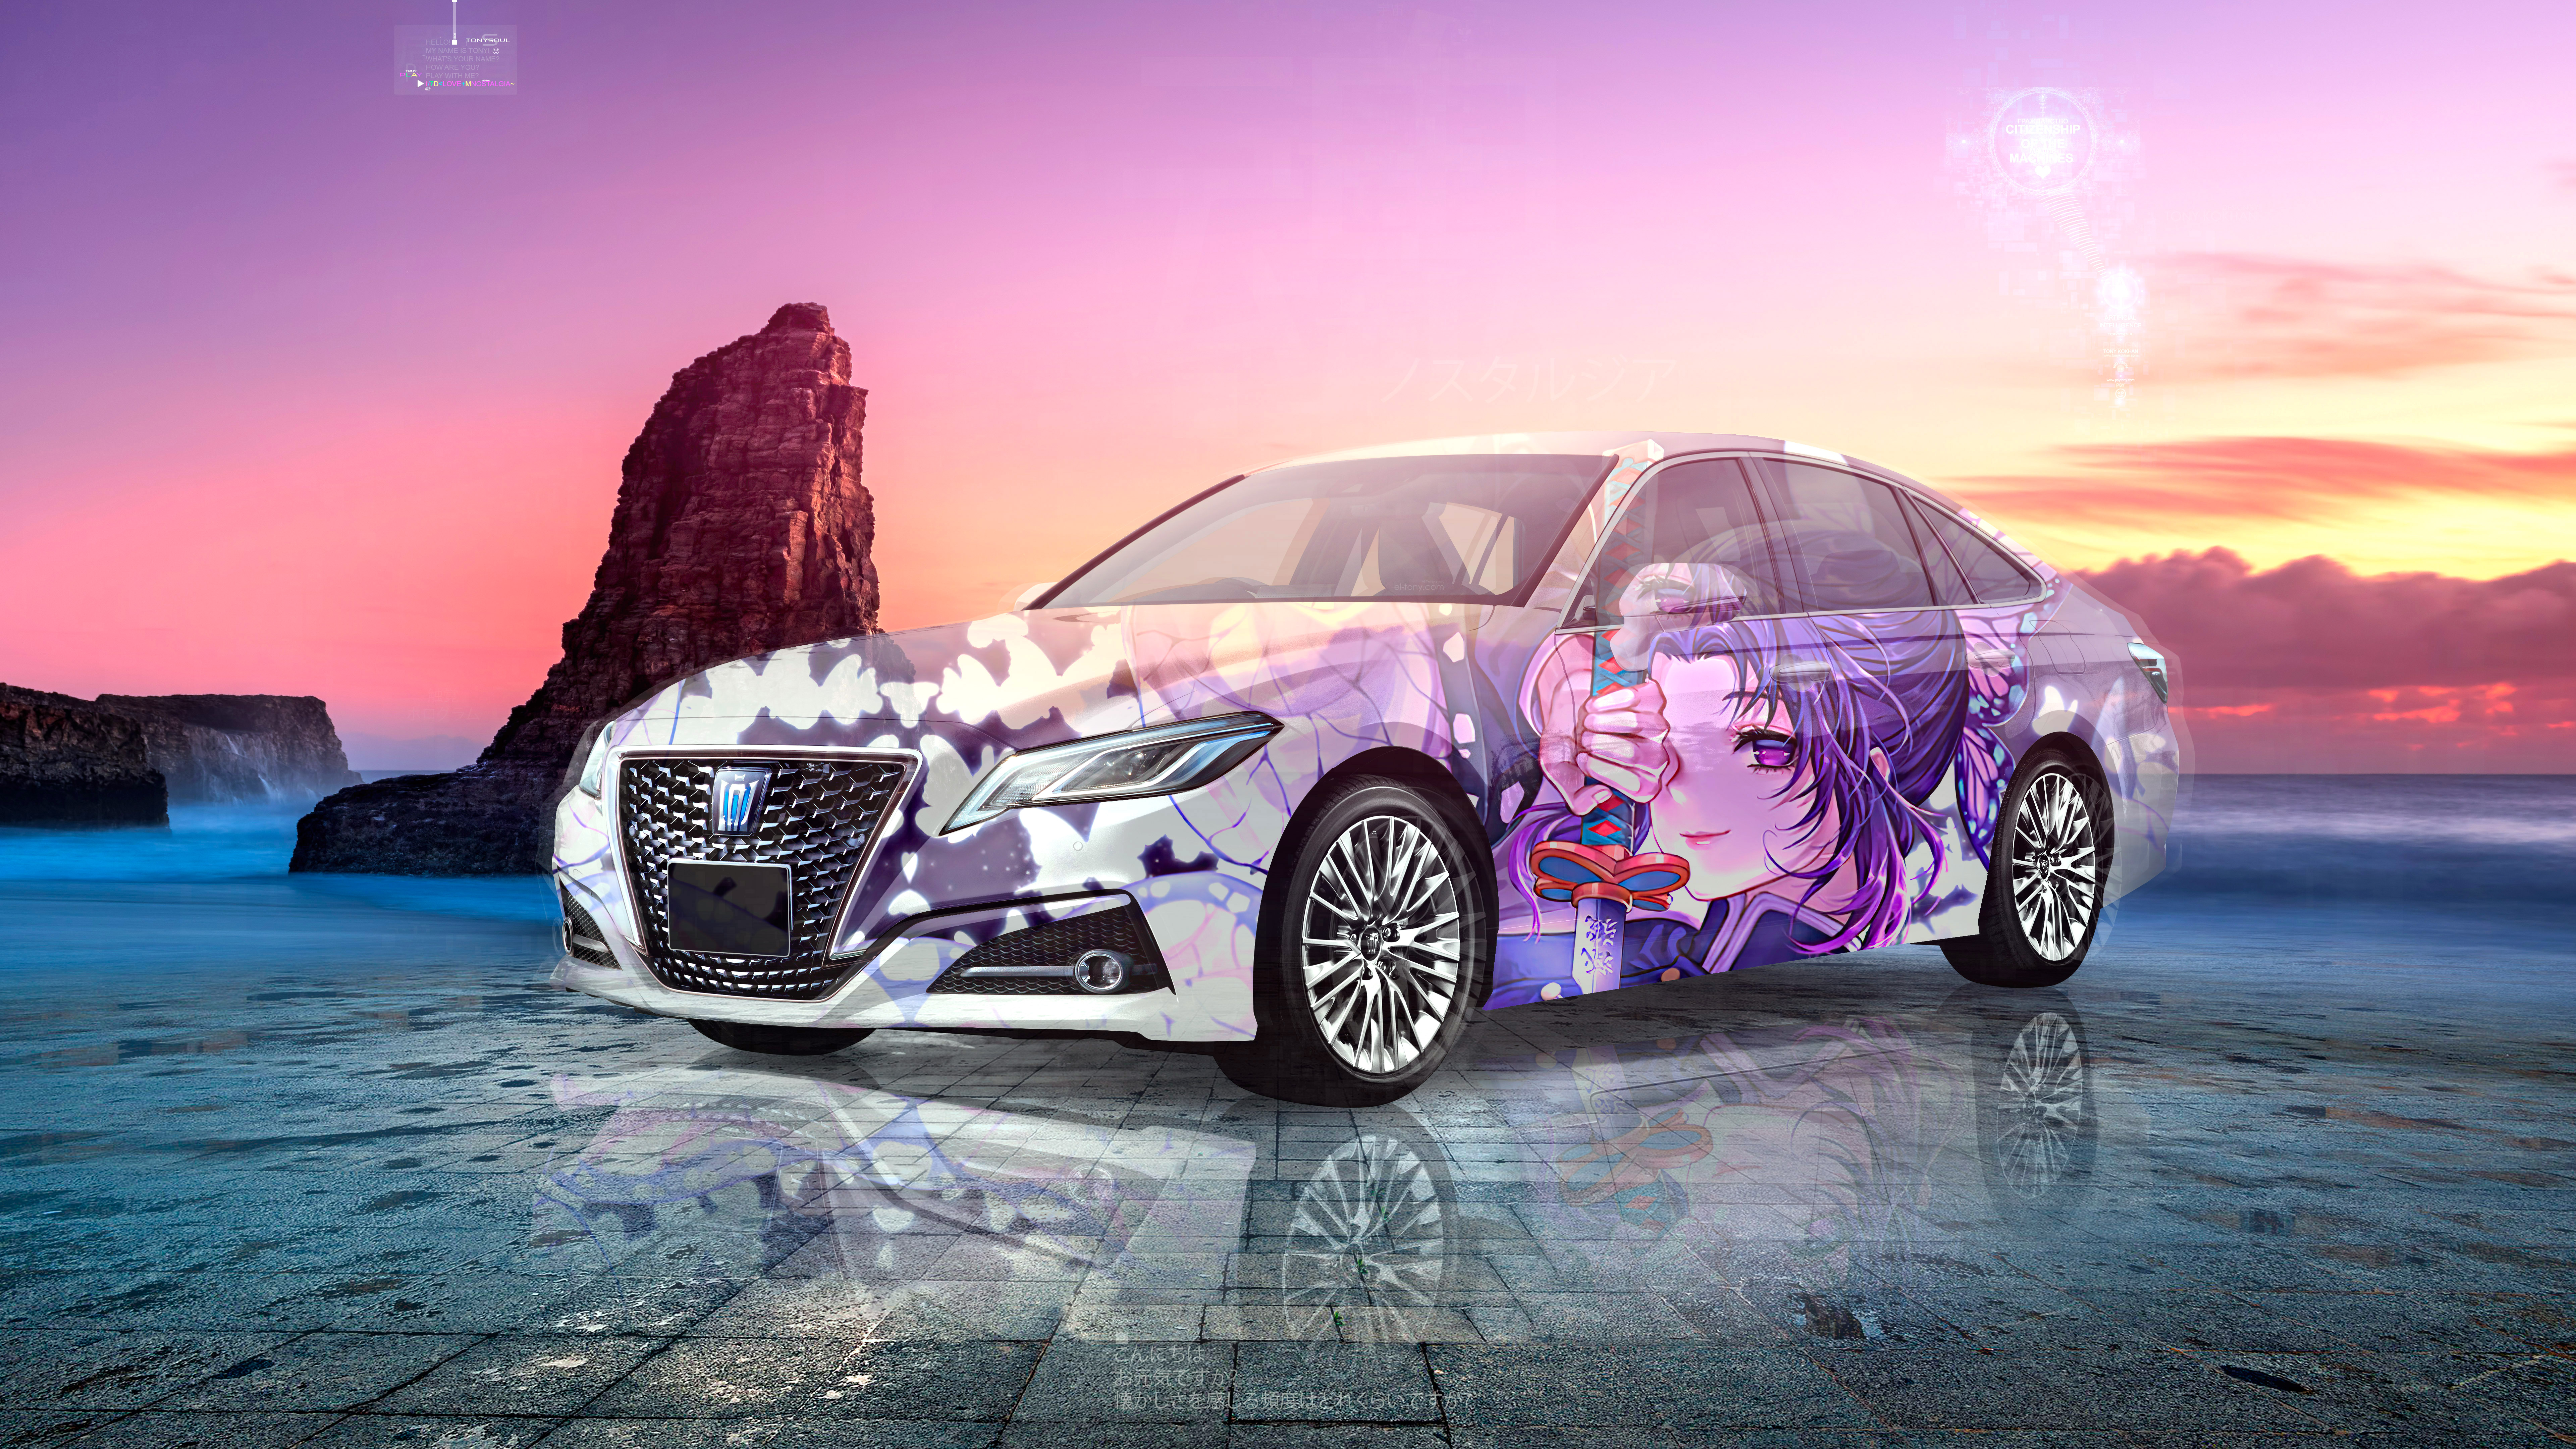 Toyota-Crown-S-Elegance-JDM-Super-Anime-Girl-Crystal-Nostalgia-Soul-Sea-Rock-Artificial-Intelligence-Citizenship-Car-2021-Multicolors-8K-Wallpapers-by-Tony-Kokhan-www.el-tony.com-image